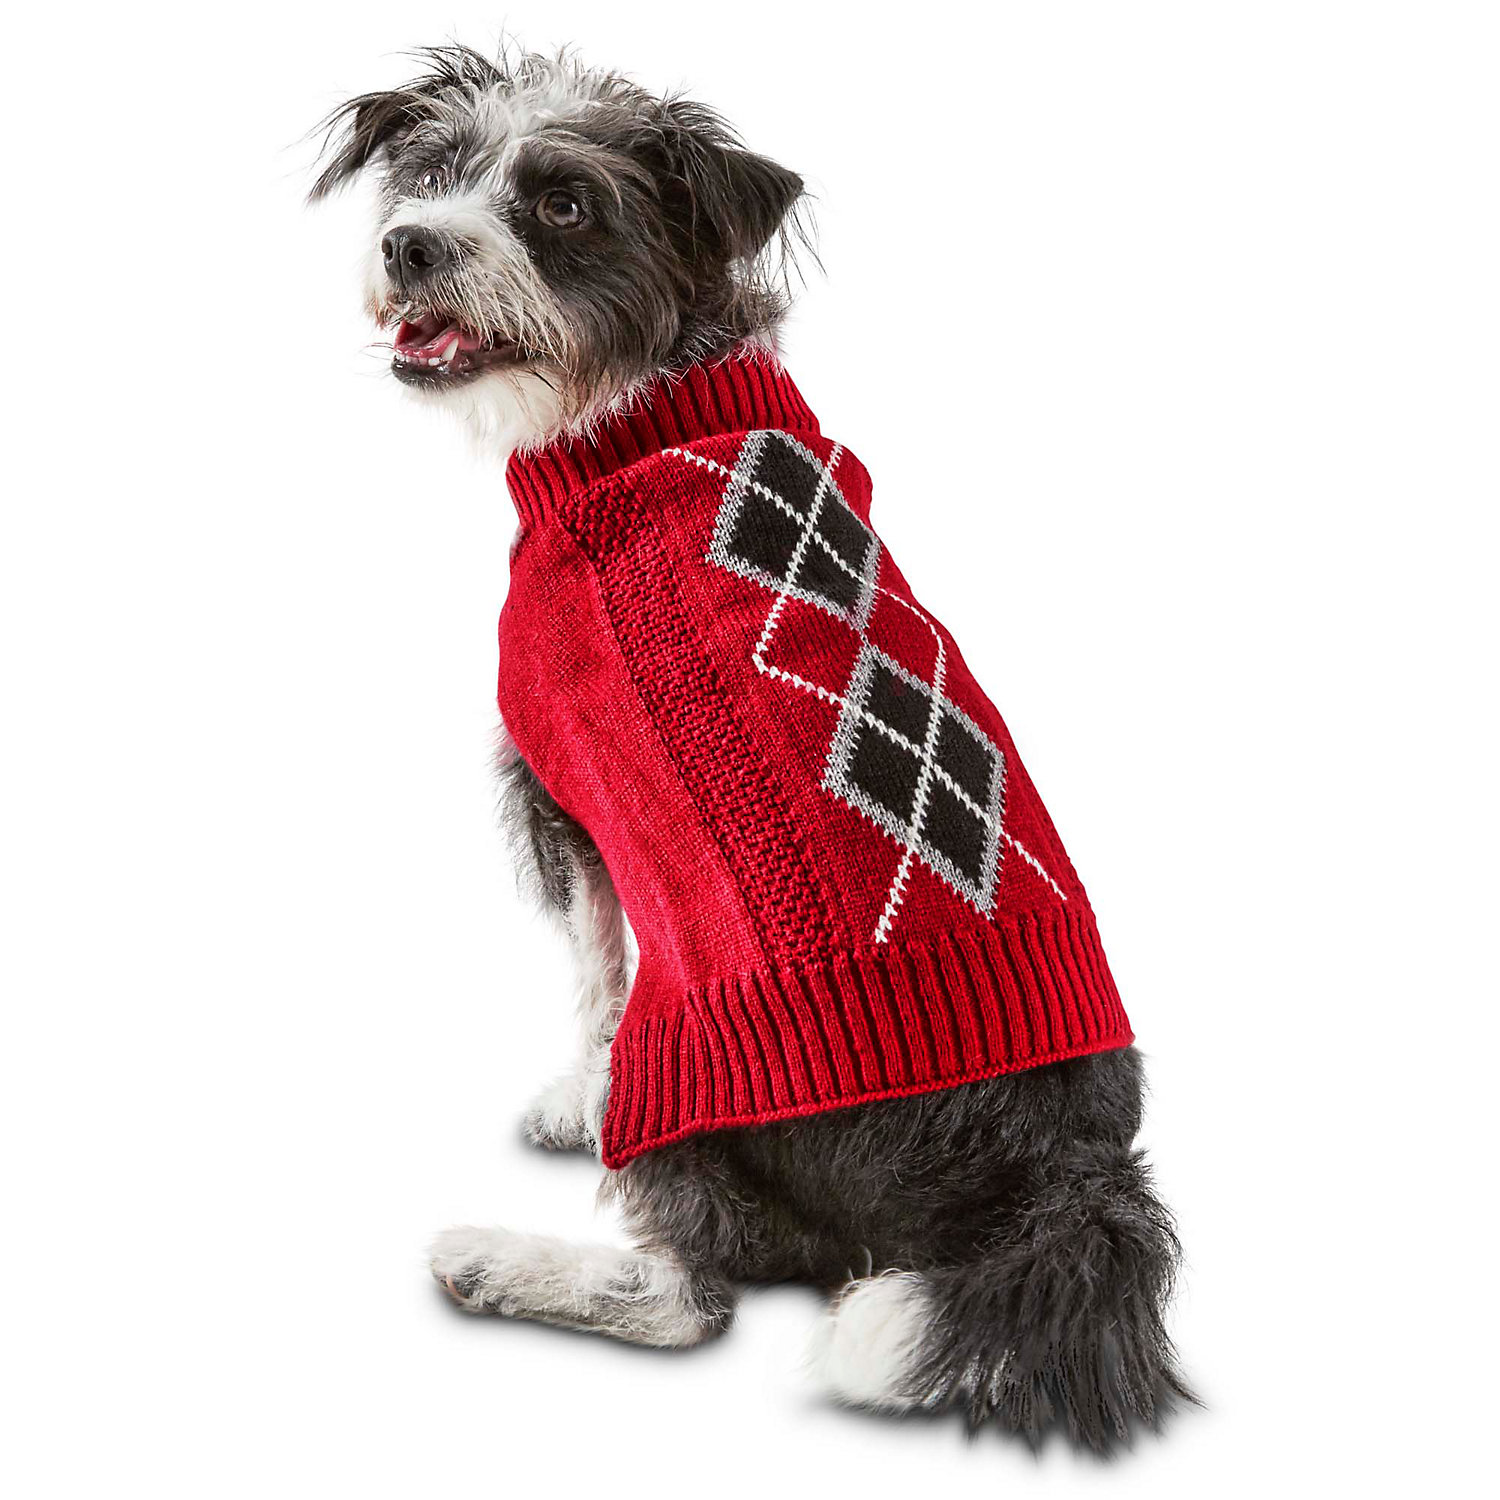 Bond & Co. Red Argyle Cable Knit Dog Sweater, Xx-small